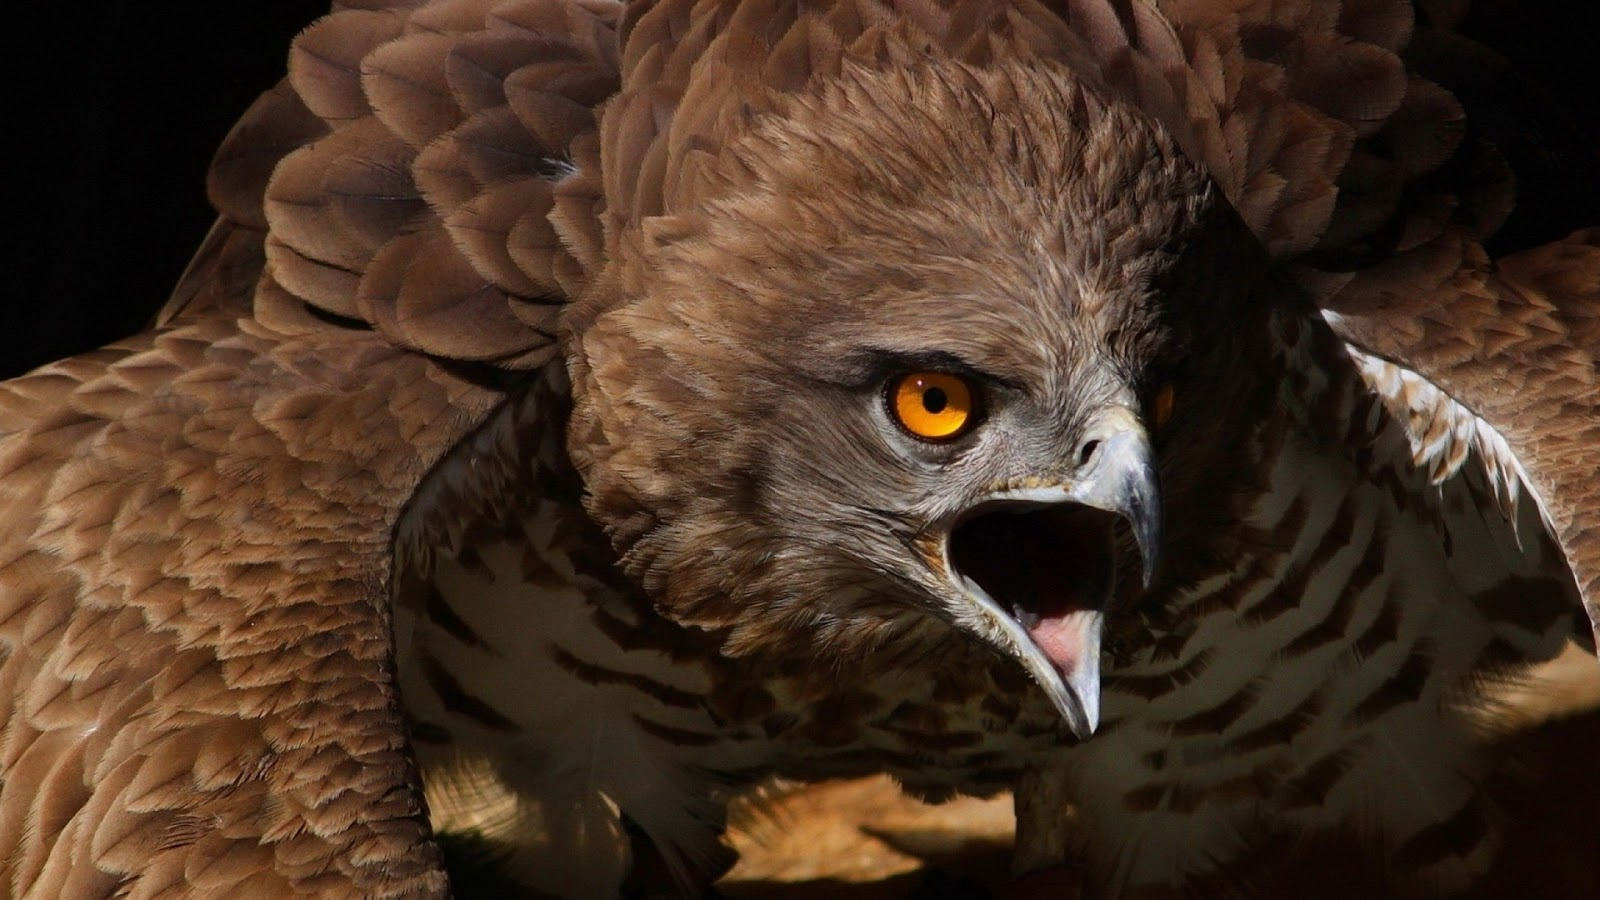 Scary Animal Wallpapers